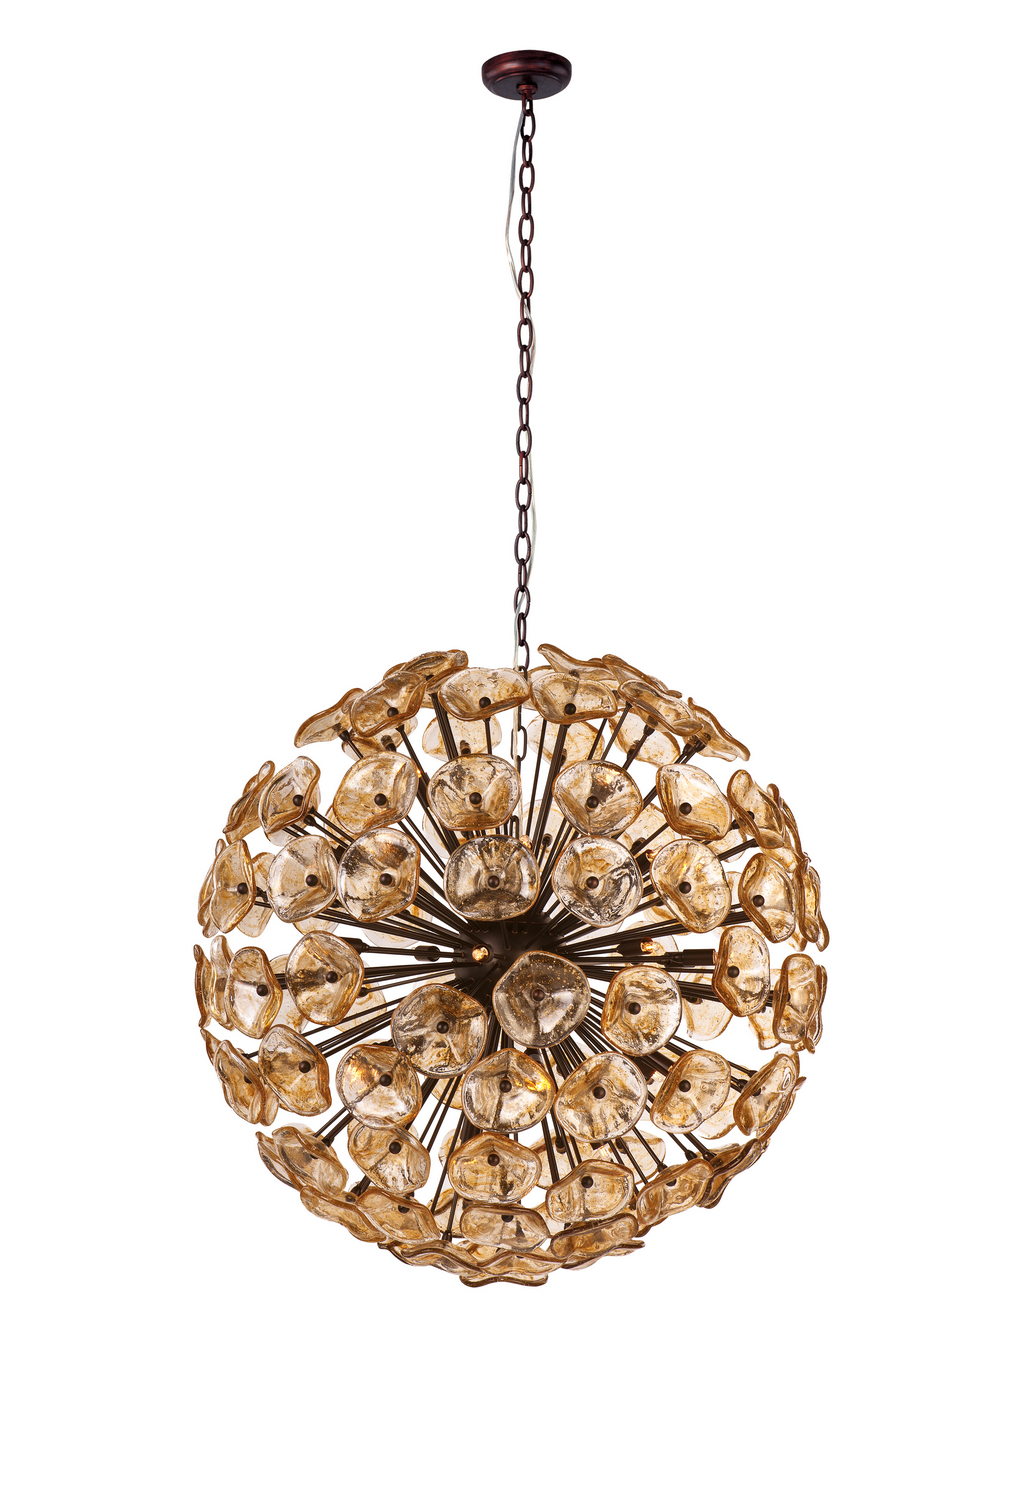 28 Light Pendant from the Fiori collection by ET2 E22096 26